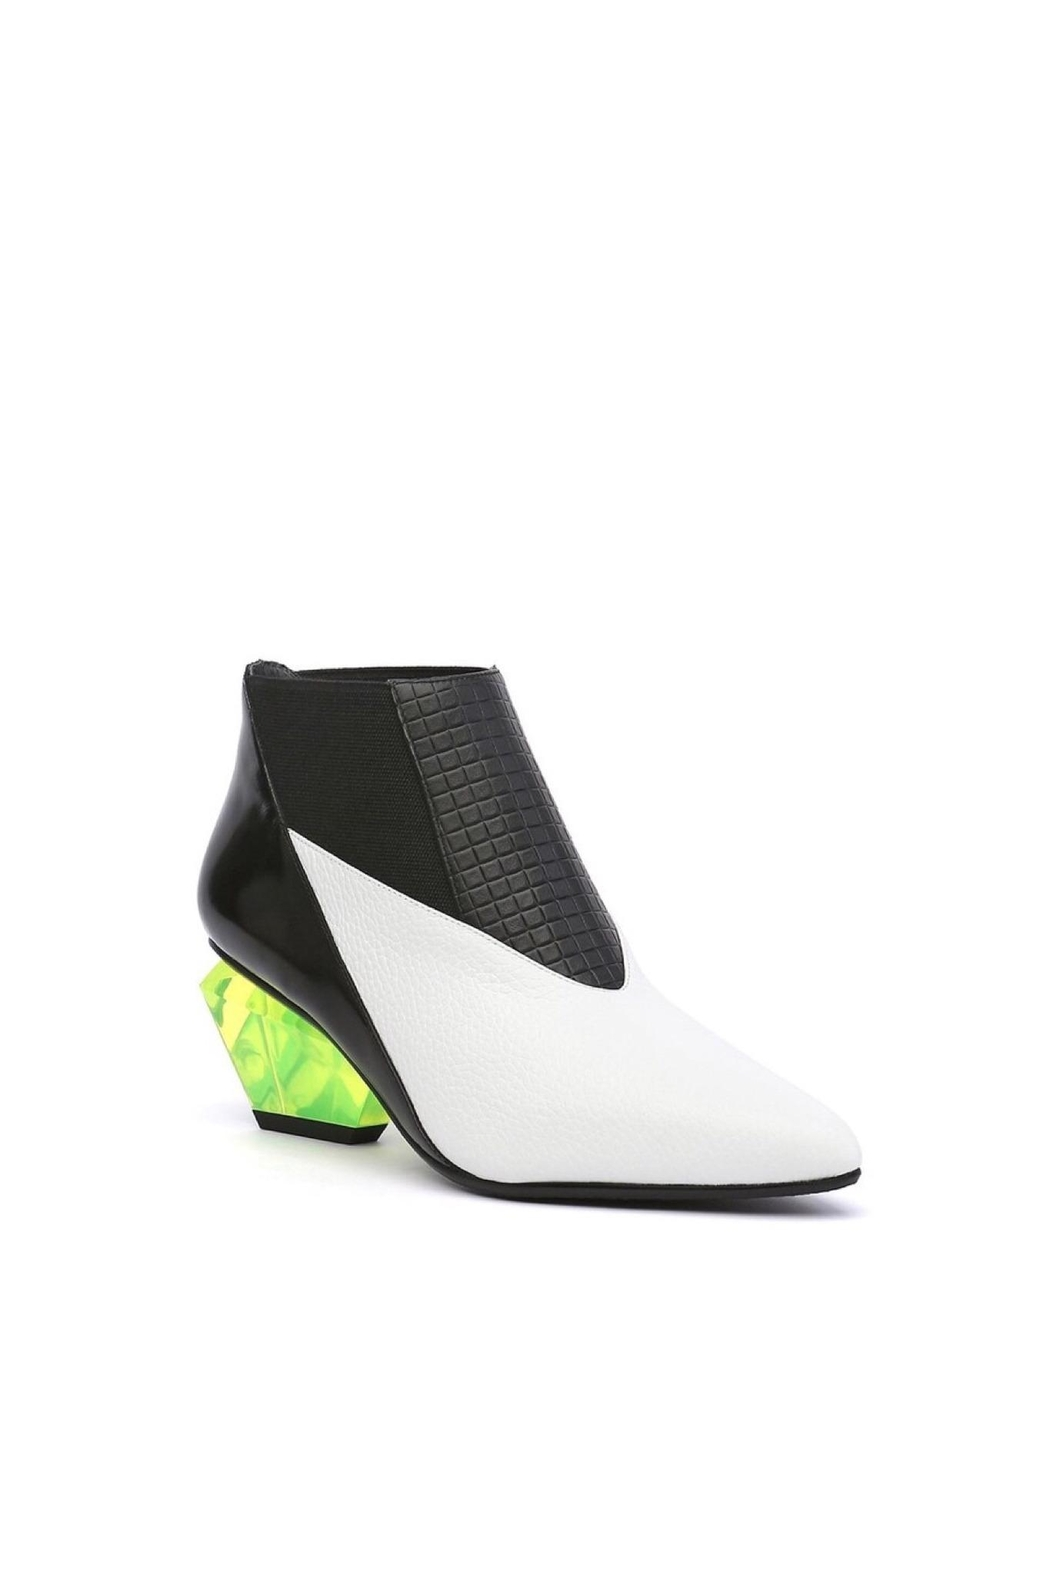 United Nude Spark Bootie - Side Cropped Image